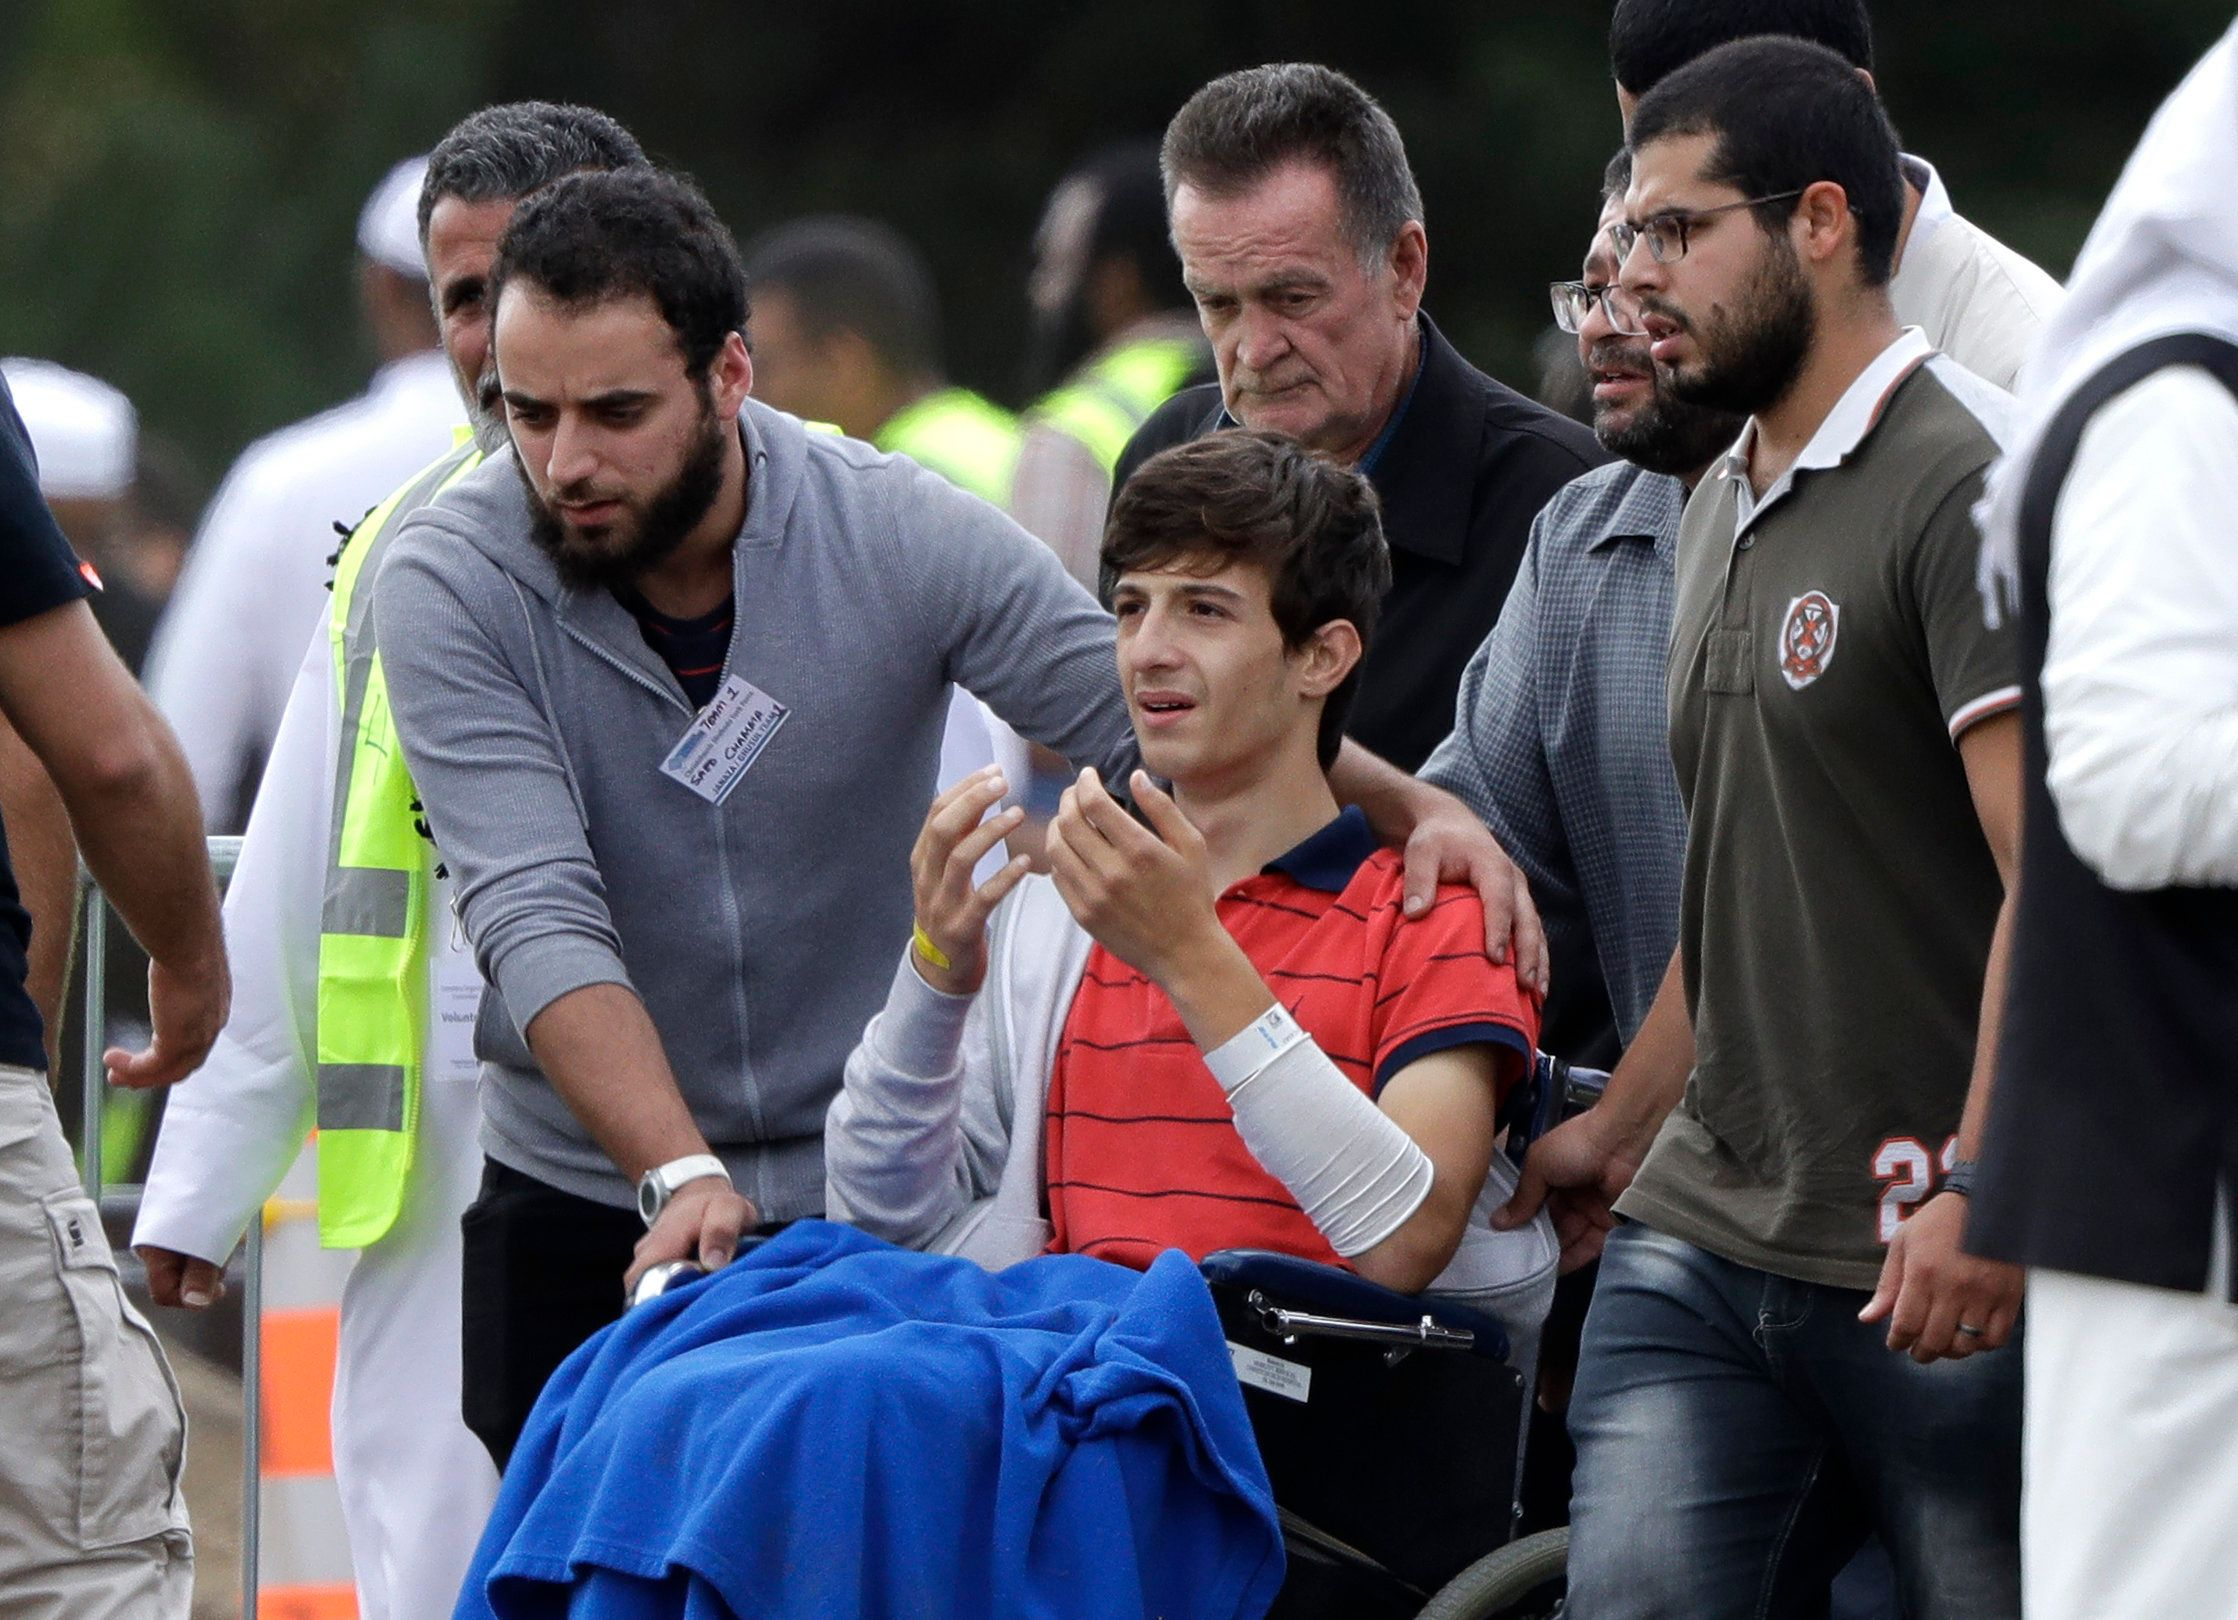 Zaed Mustafa, in wheelchair, brother of Hamza and son of Khalid Mustafa killed in the Friday, March 15 mosque shootings reacts during their burial at the Memorial Park Cemetery in Christchurch, New Zealand, Wednesday, March 20, 2019. (AP Photo/Mark Baker)